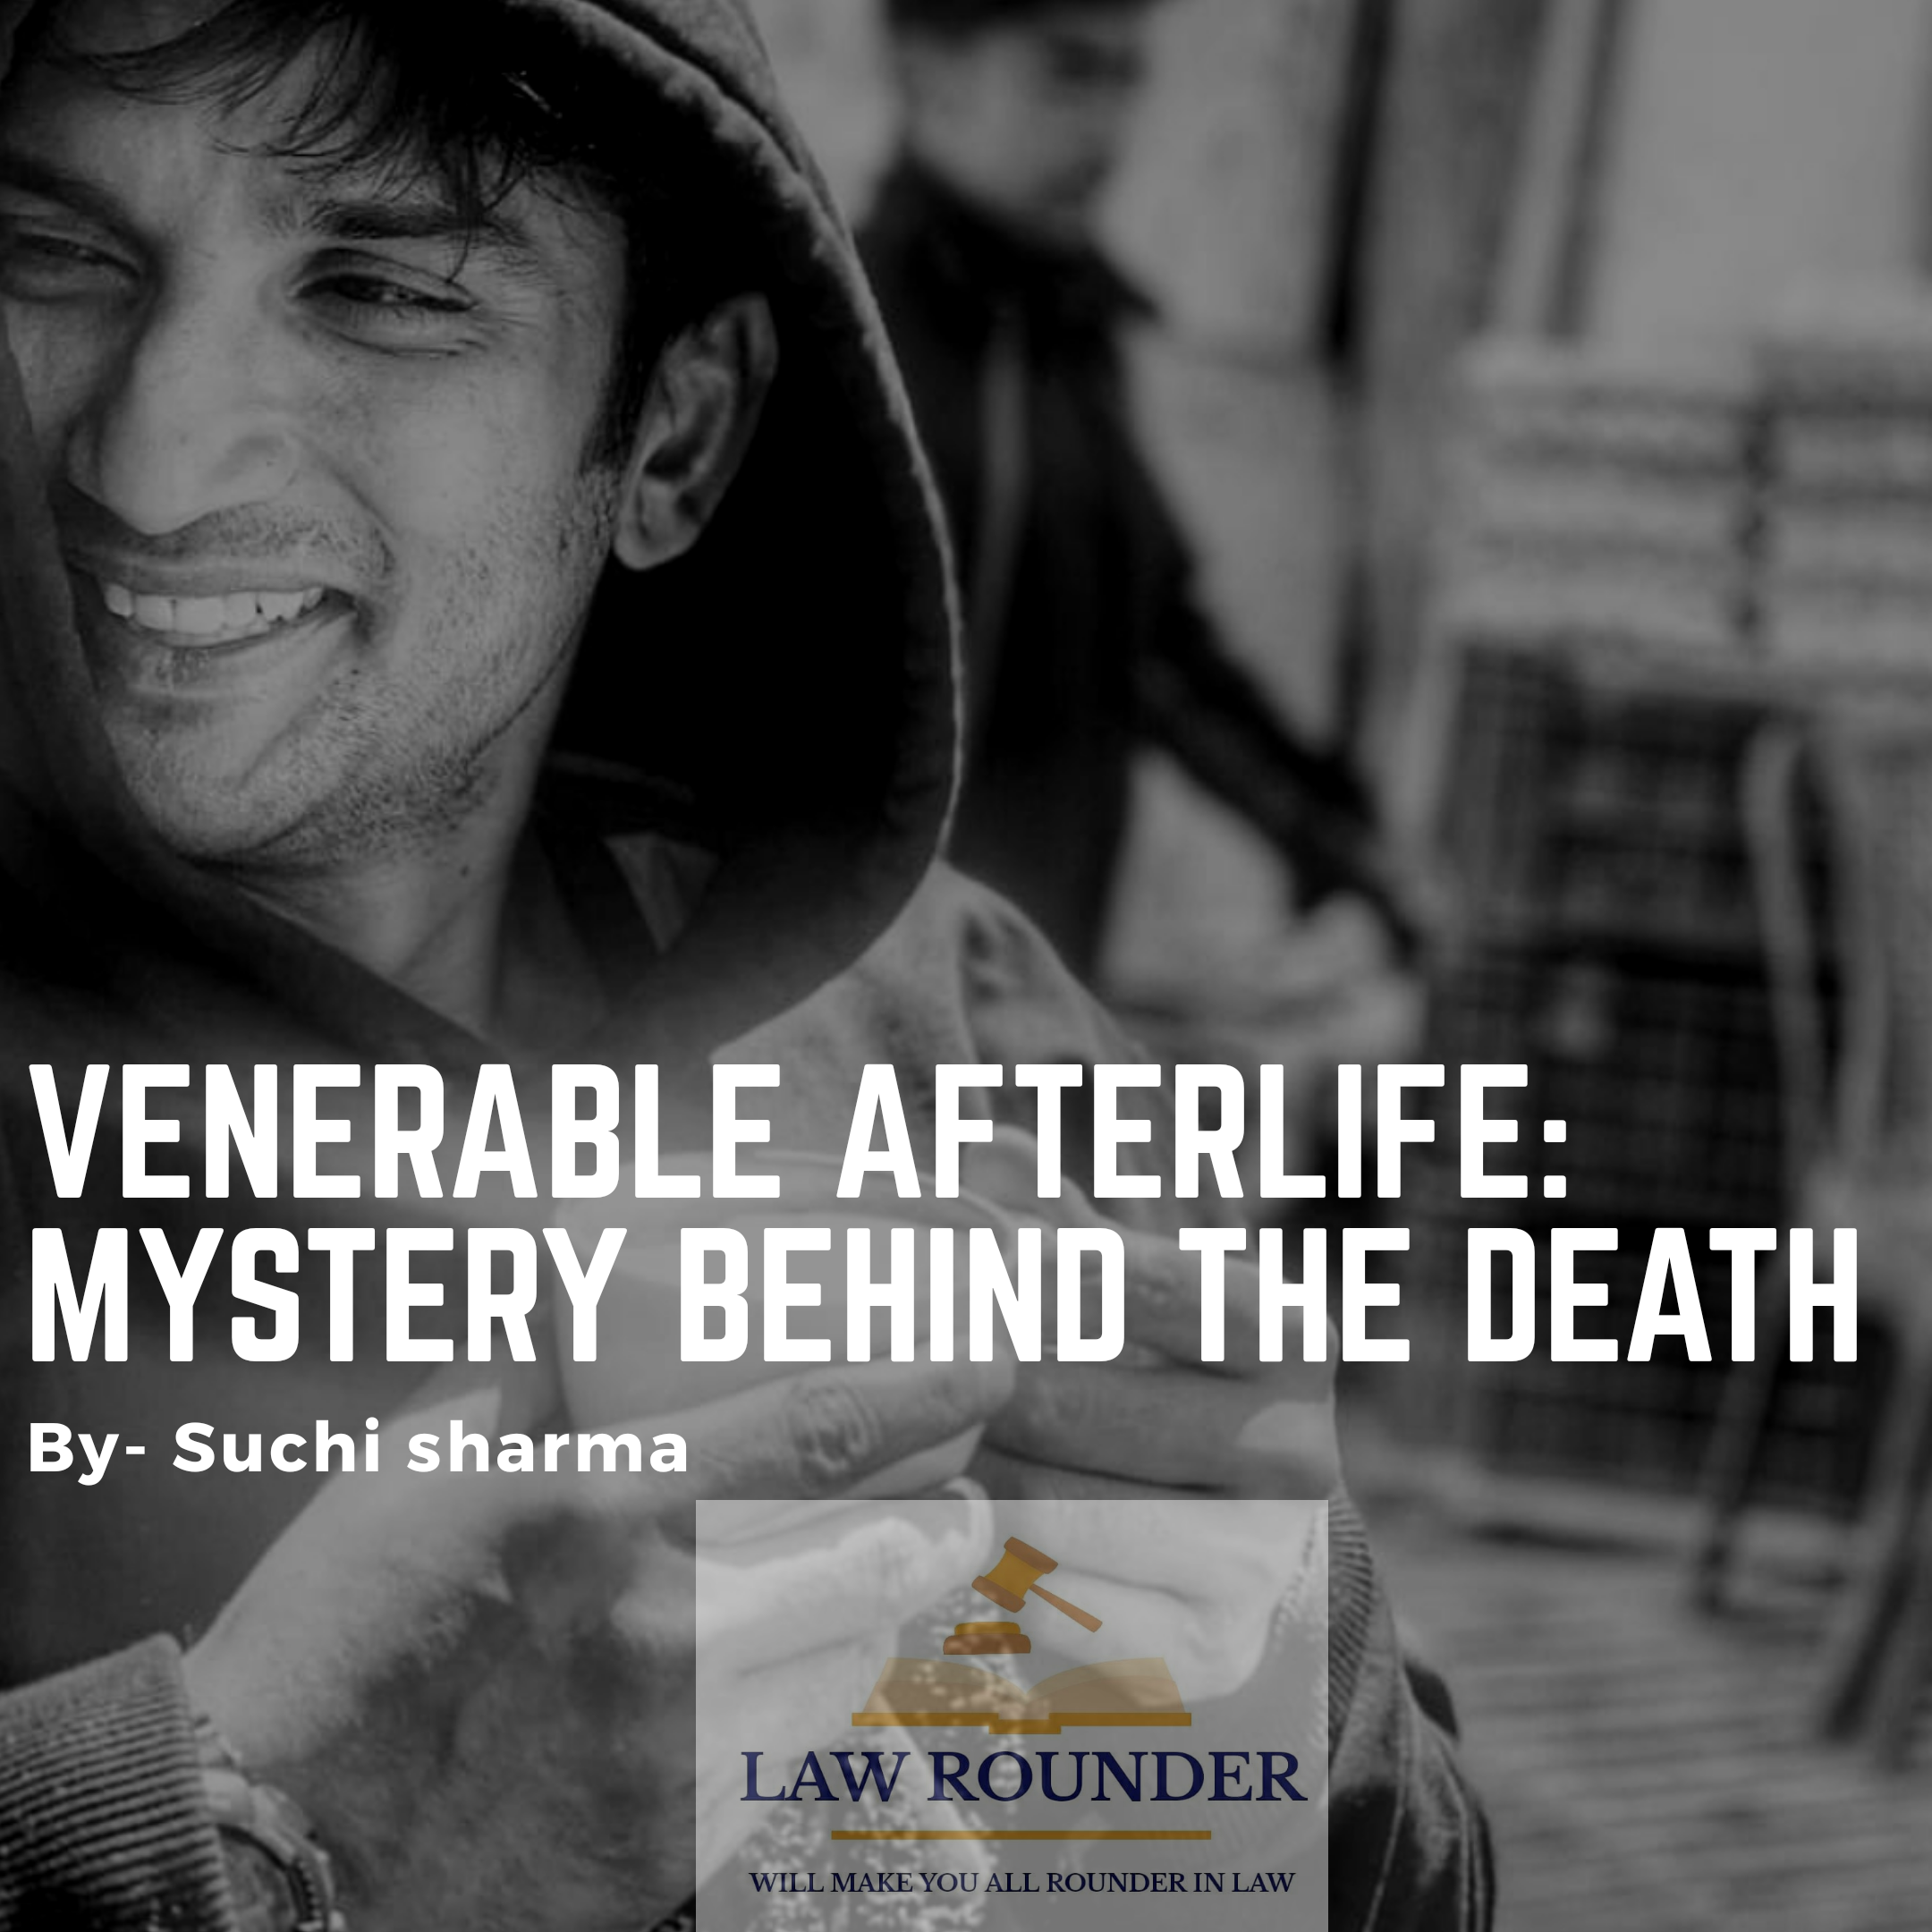 Venerable afterlife: mystery behind the death